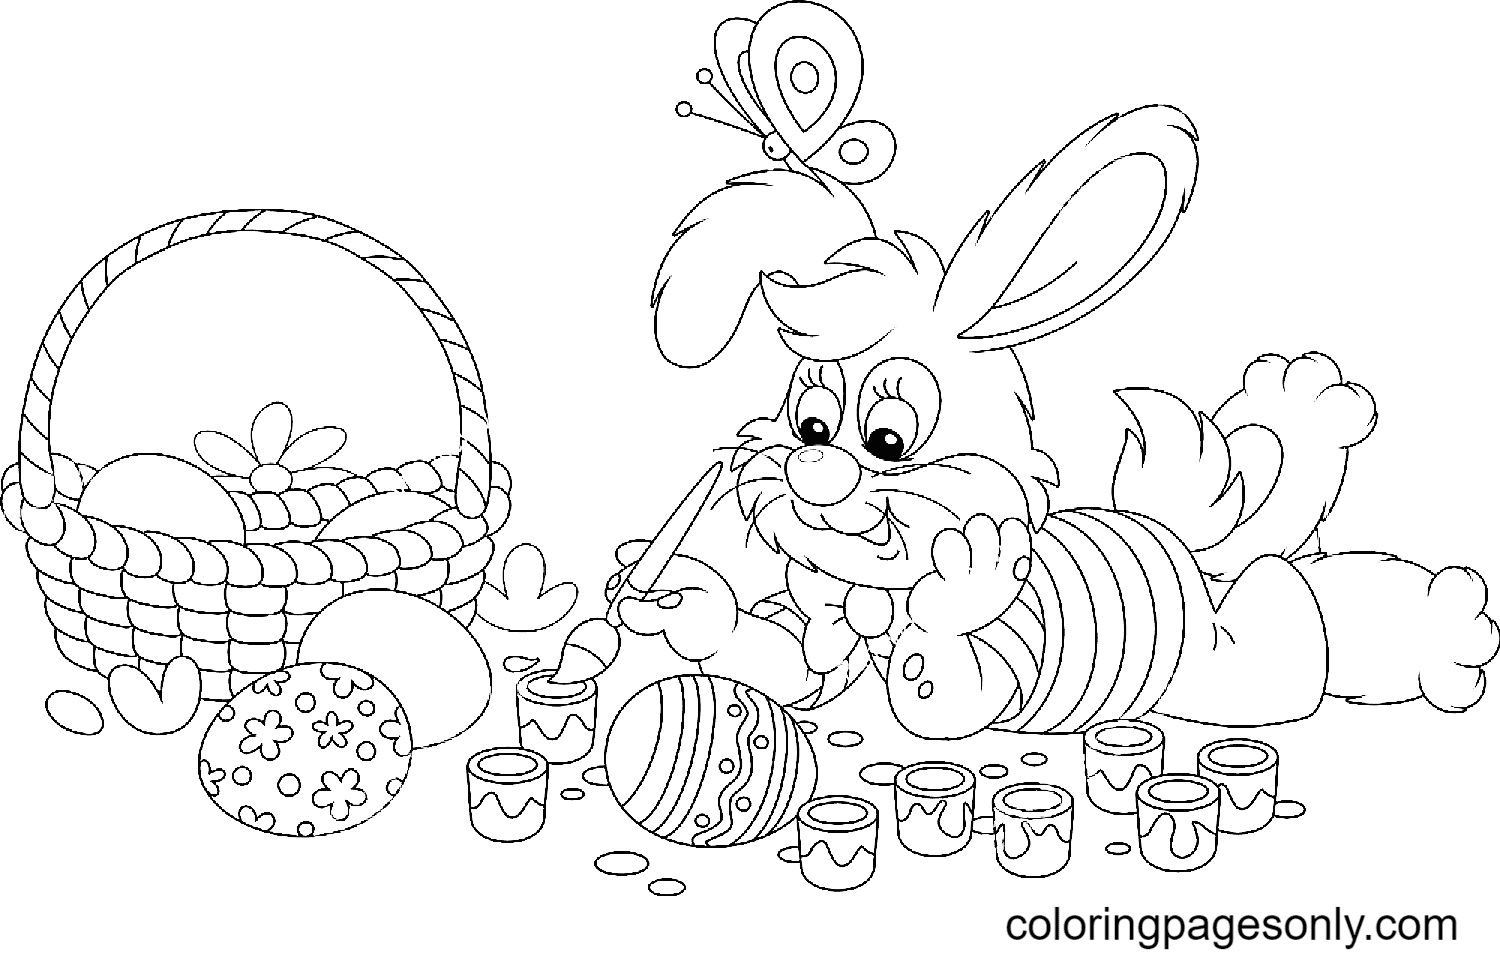 Bunny Painting Easter Eggs with an Art Paintbrush Coloring Page